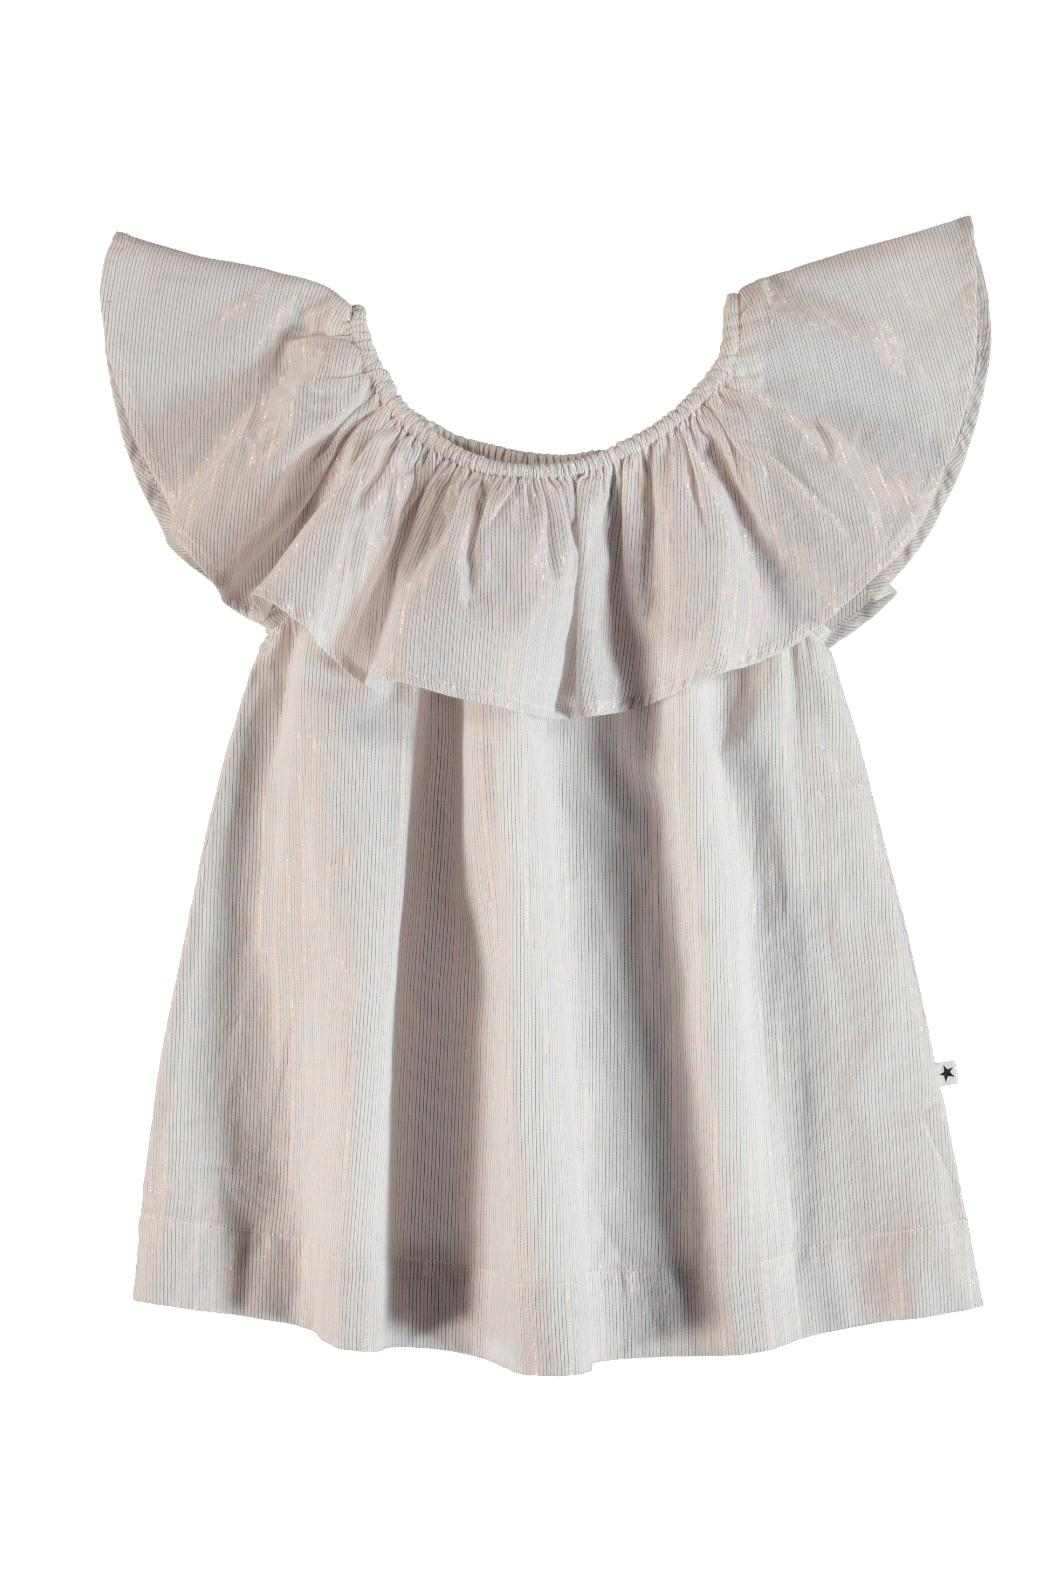 Molo Reece Top - Front Cropped Image